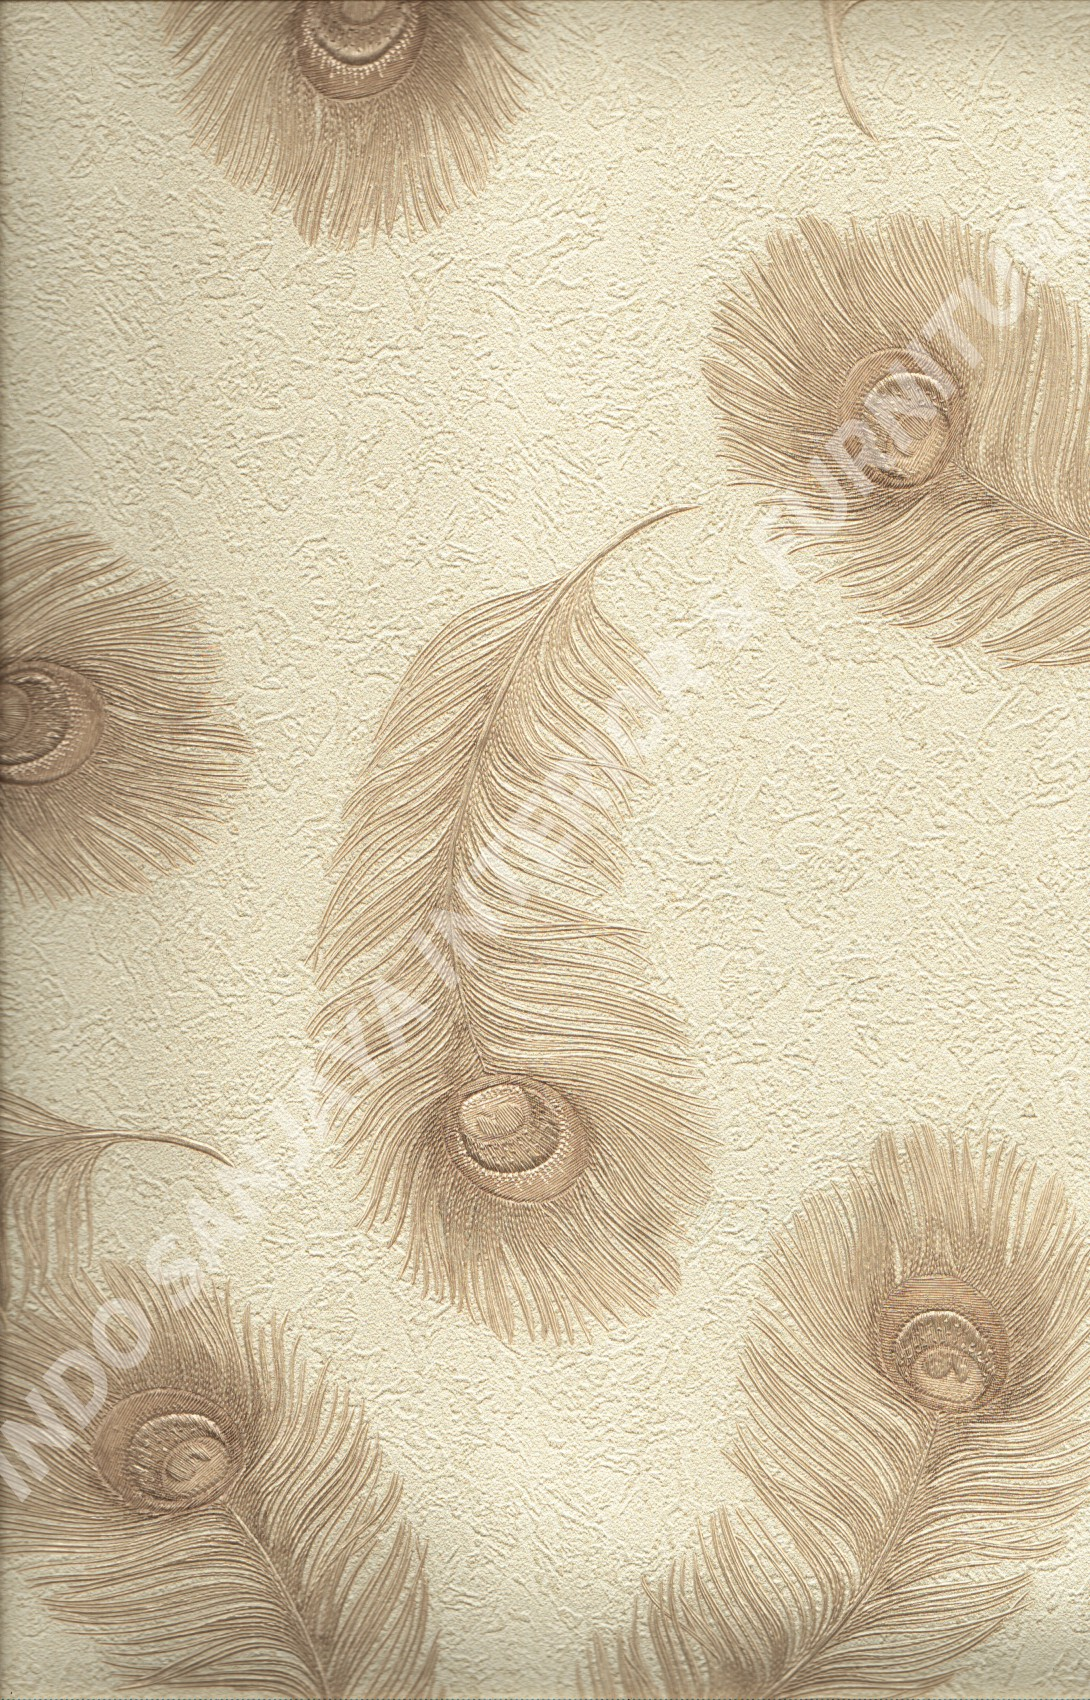 wallpaper   Wallpaper Bunga 11052:11052 corak  warna